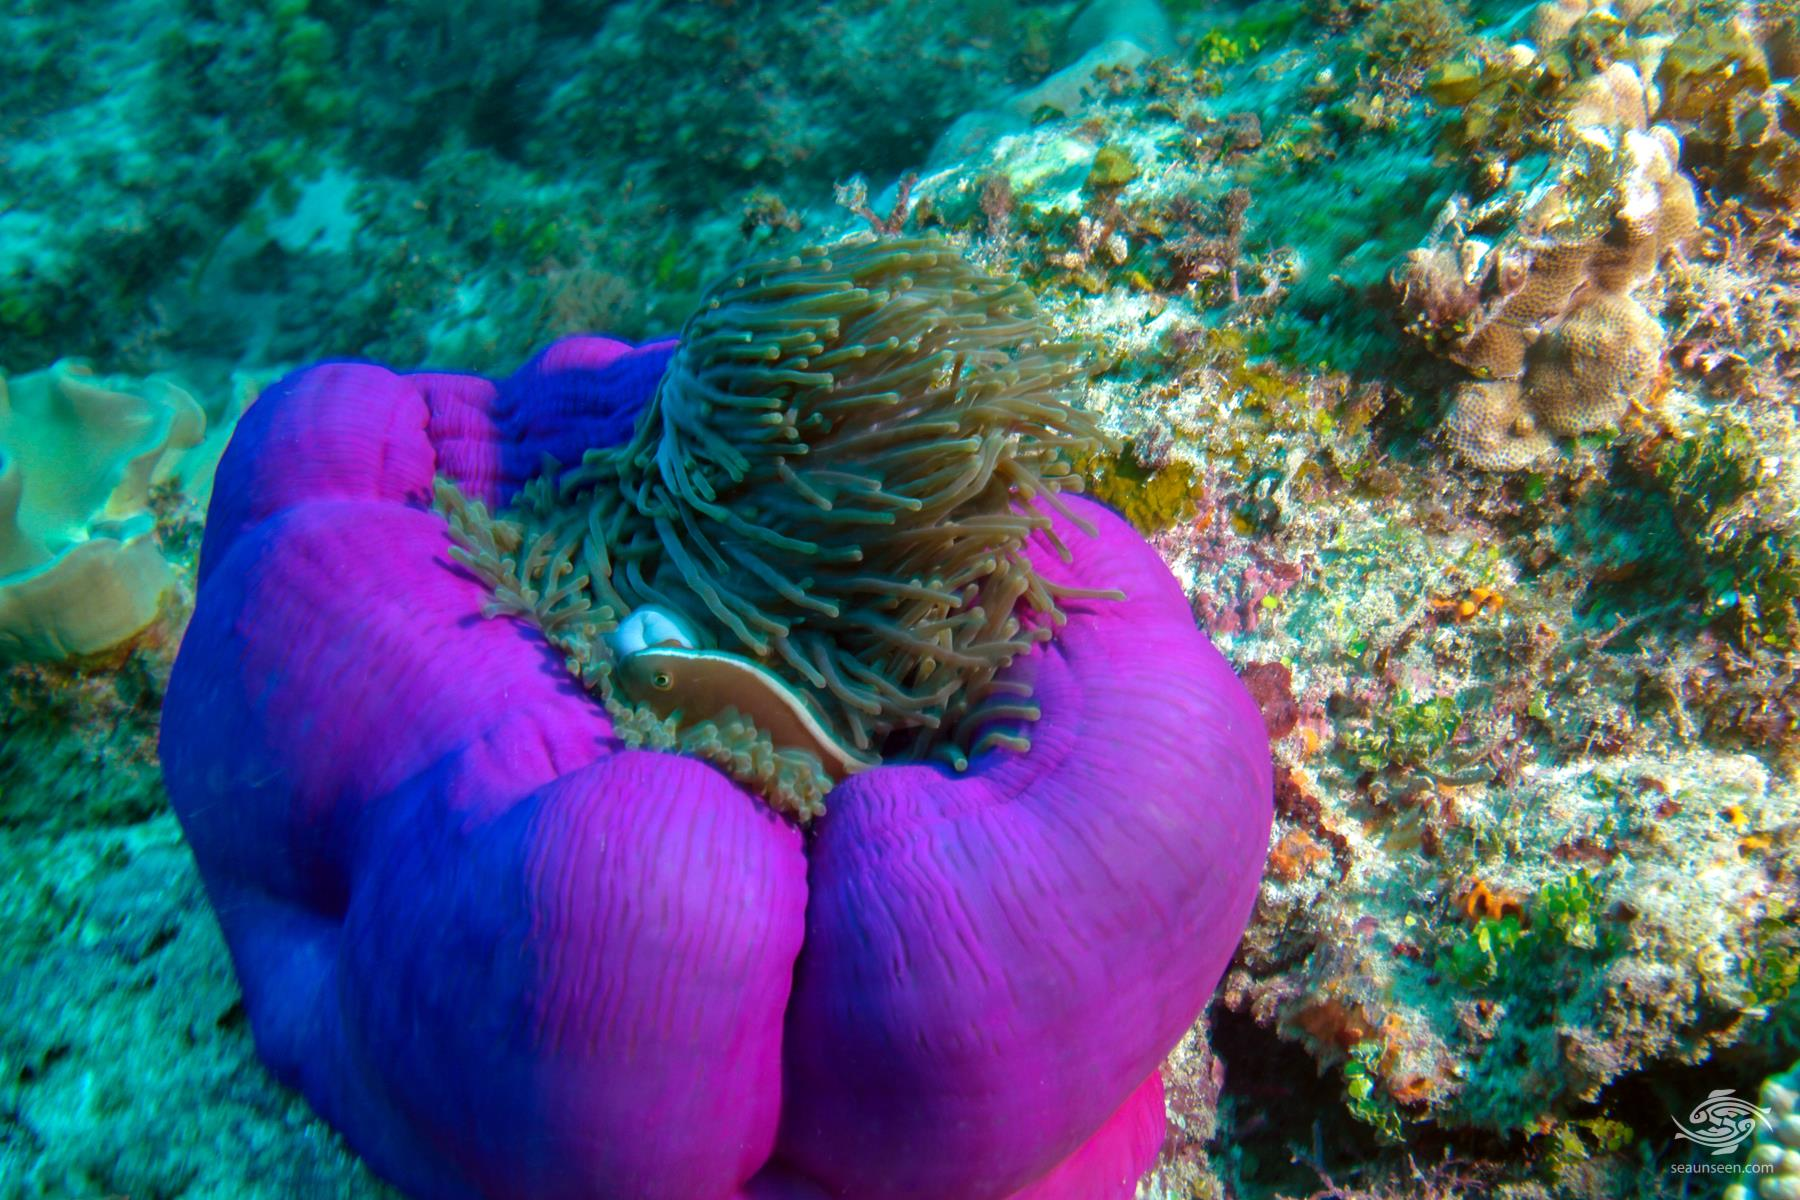 A magnificent anemone heteractis magnificae at Powoni near Paje in Zanzibar